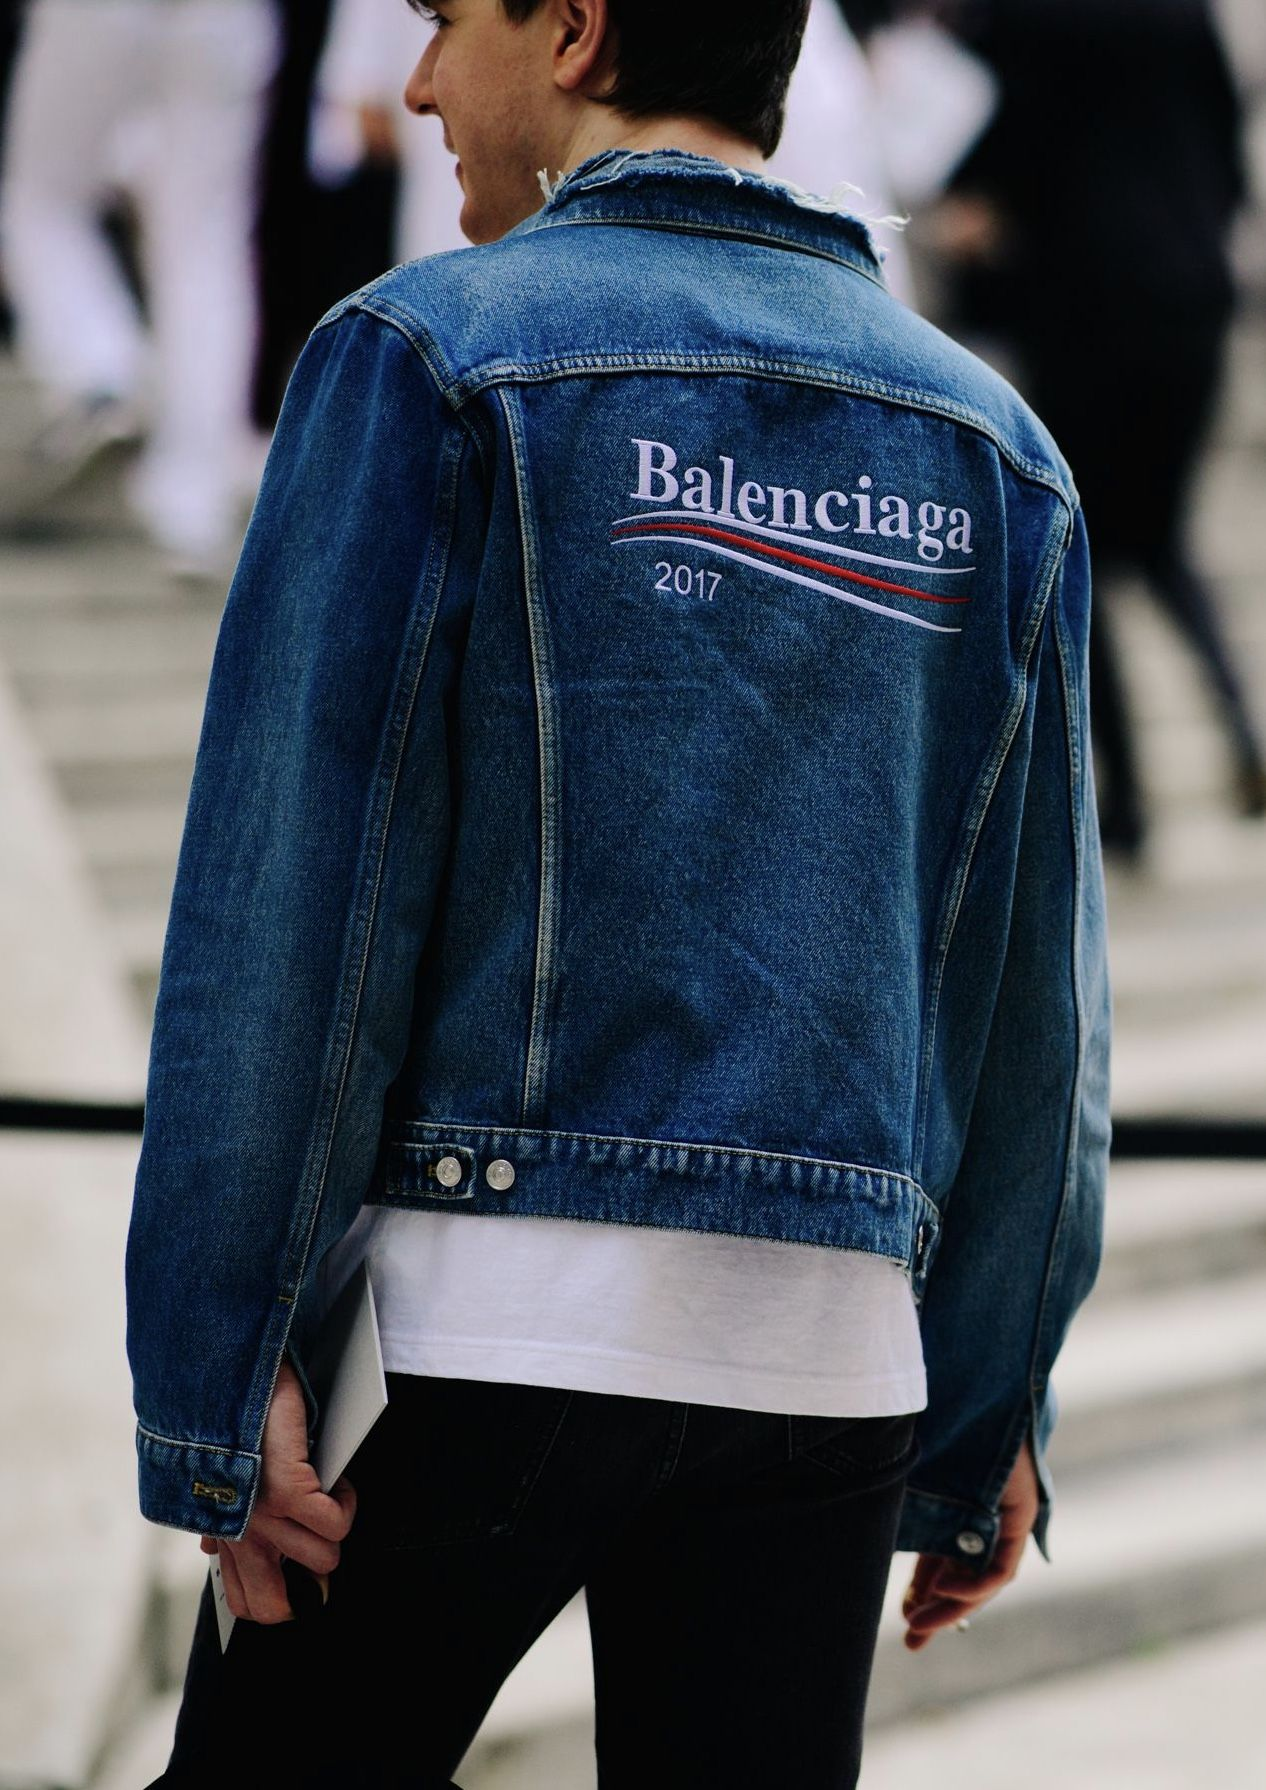 Balenciaga Mens Fall 2017 Bernie Sanders Inspired Collection Classic Denim Embroidered Jacket Mens Luxury Fashion Balenciaga Mens Mens Fall [ 1790 x 1266 Pixel ]